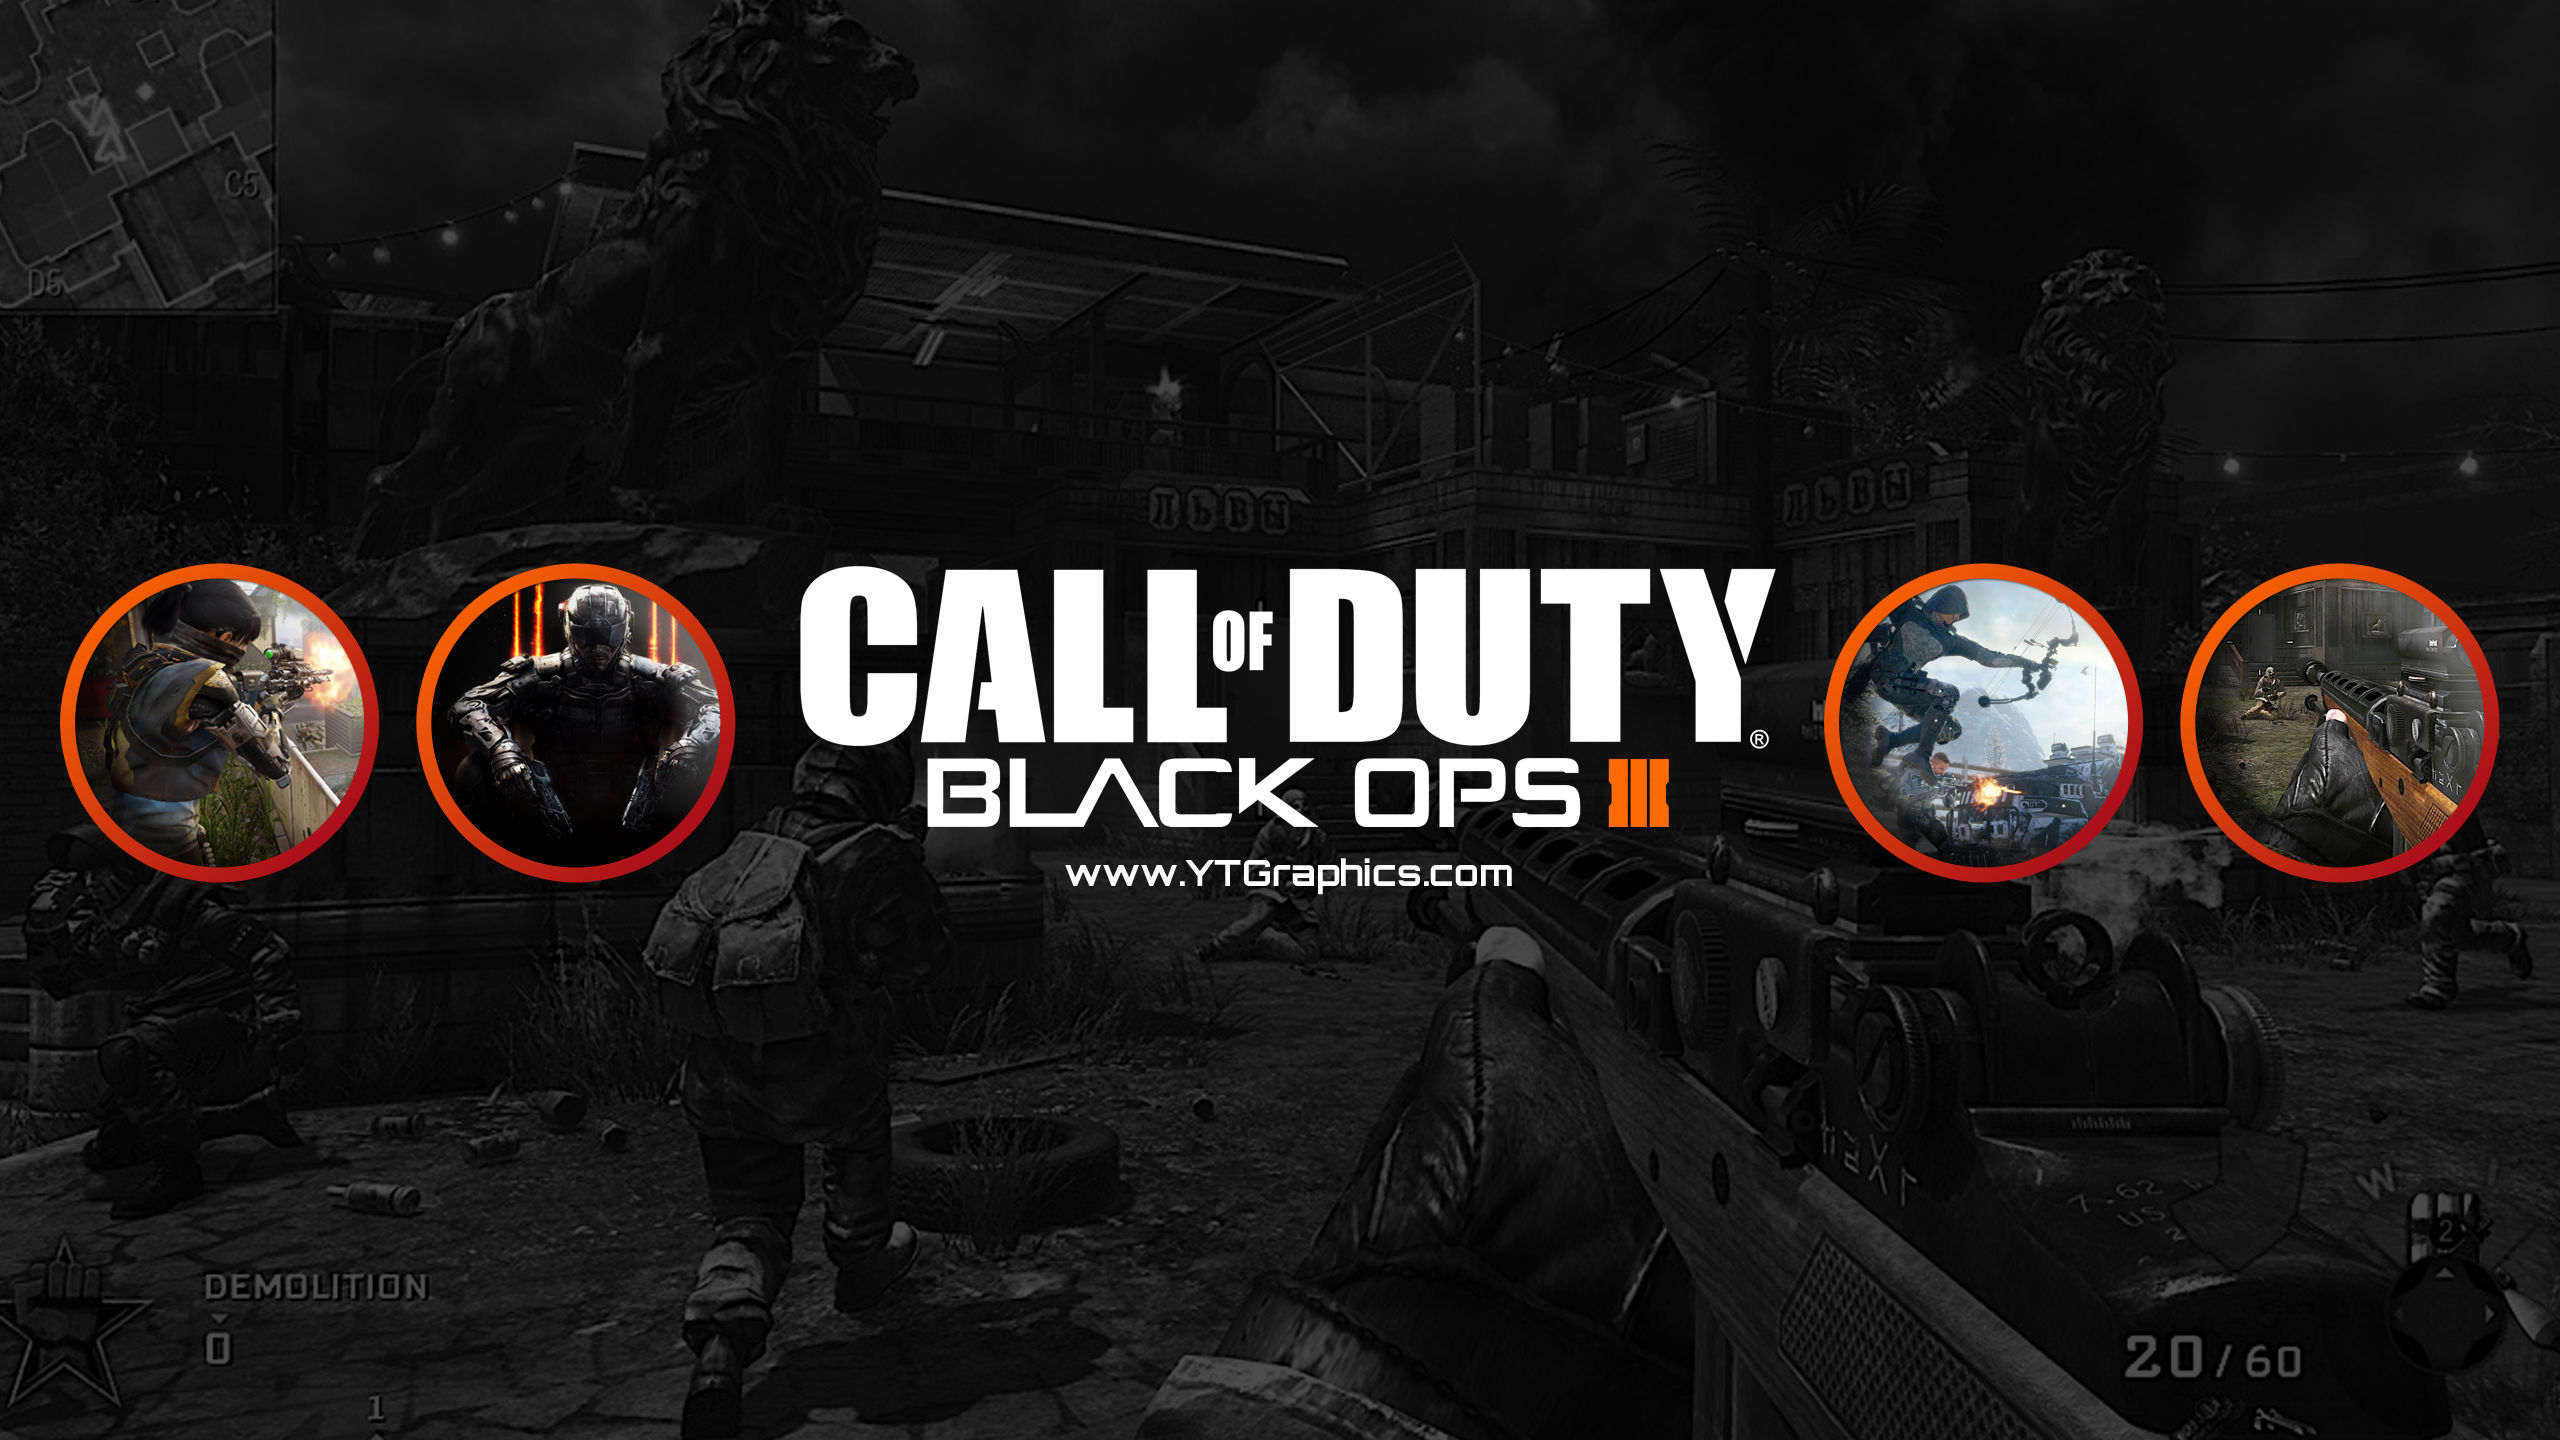 Call of duty black ops iii youtube channel art banners download banner pronofoot35fo Images